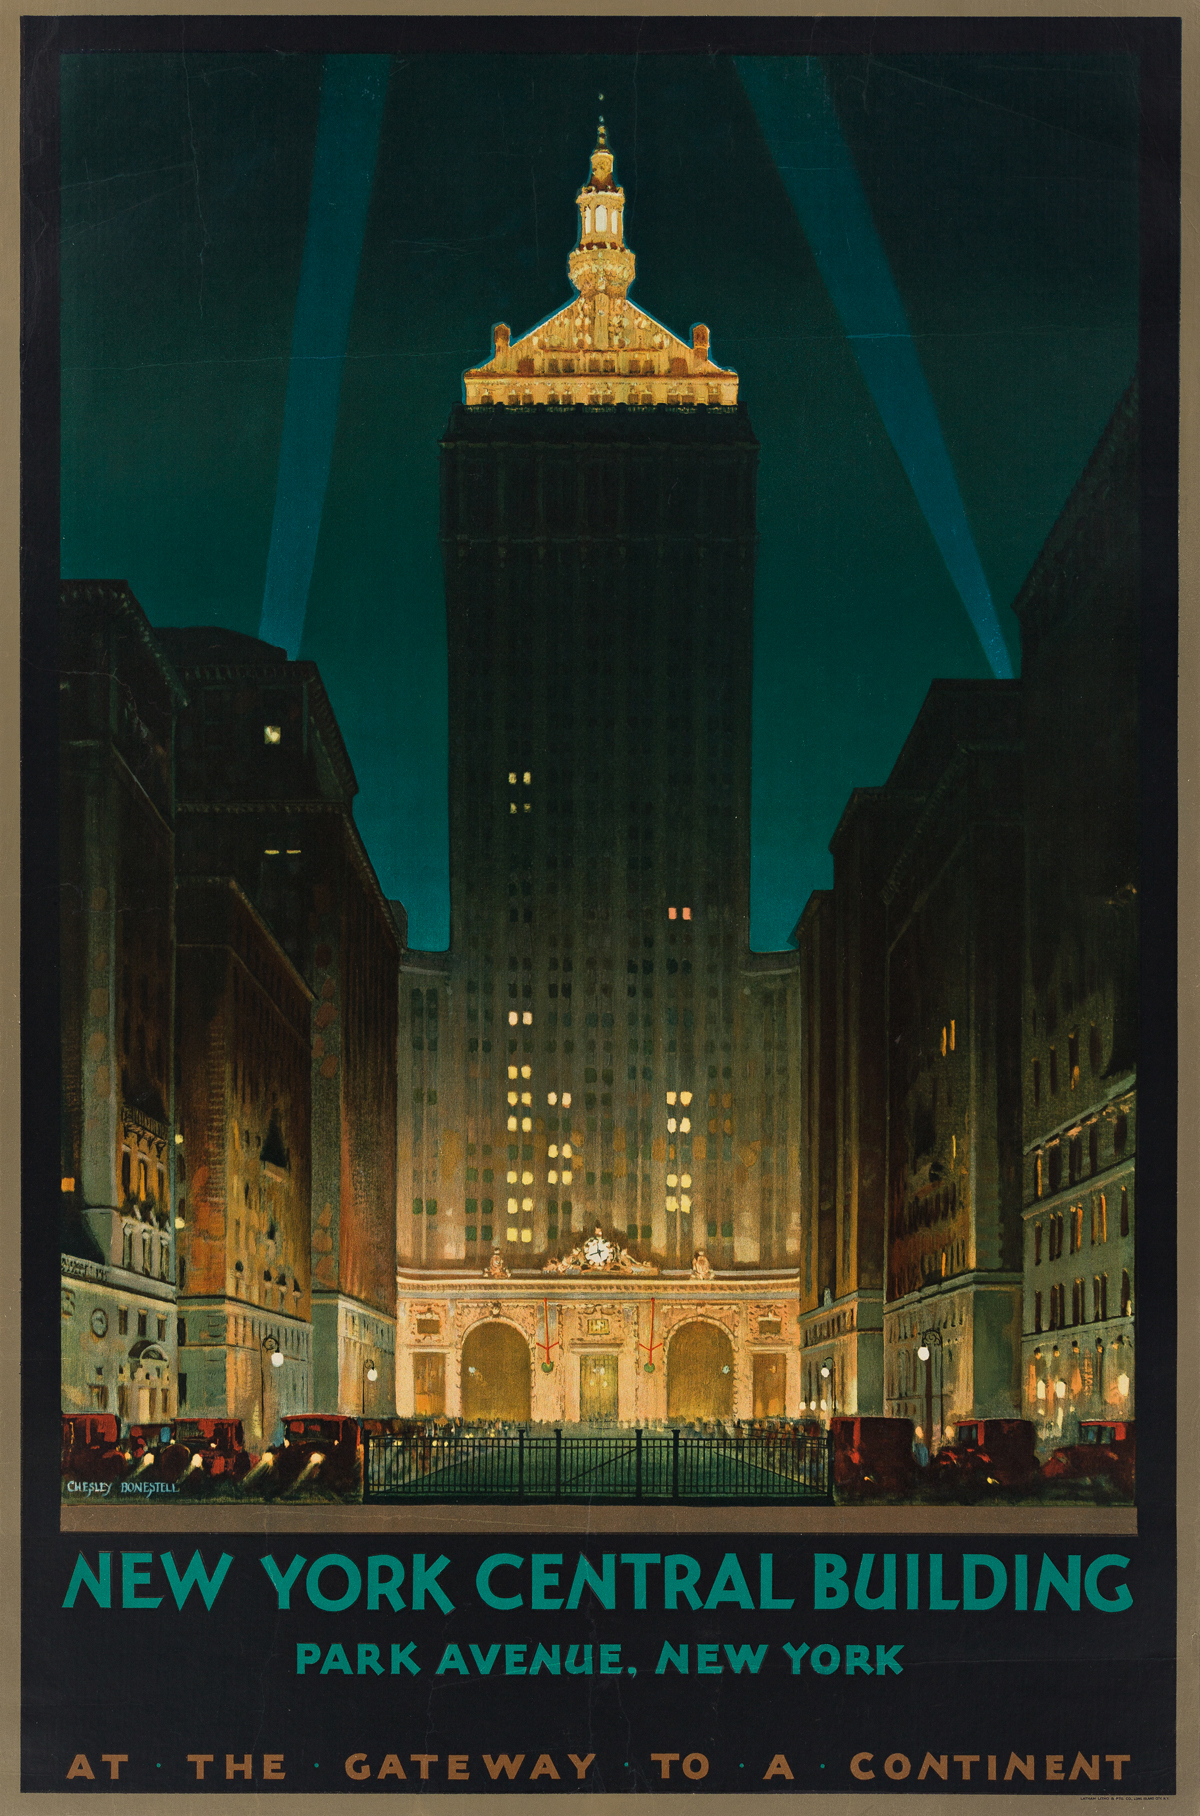 Chesley Bonestell (1888-1986).  NEW YORK CENTRAL BUILDING / AT THE GATEWAY TO A CONTINENT. Circa 1929.